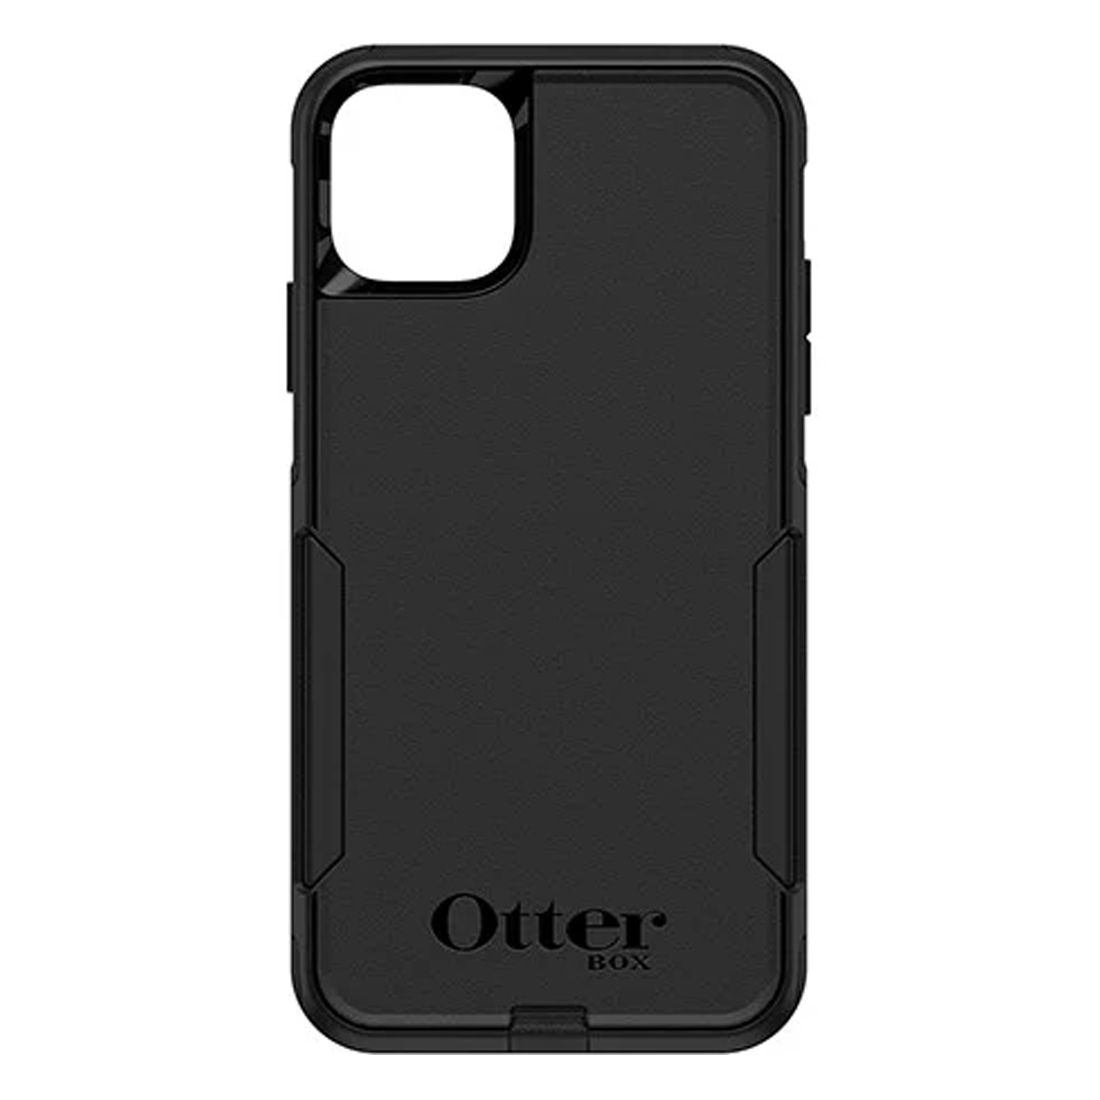 Otterbox Commuter Case for Apple iPhone 11 Pro Max - Black